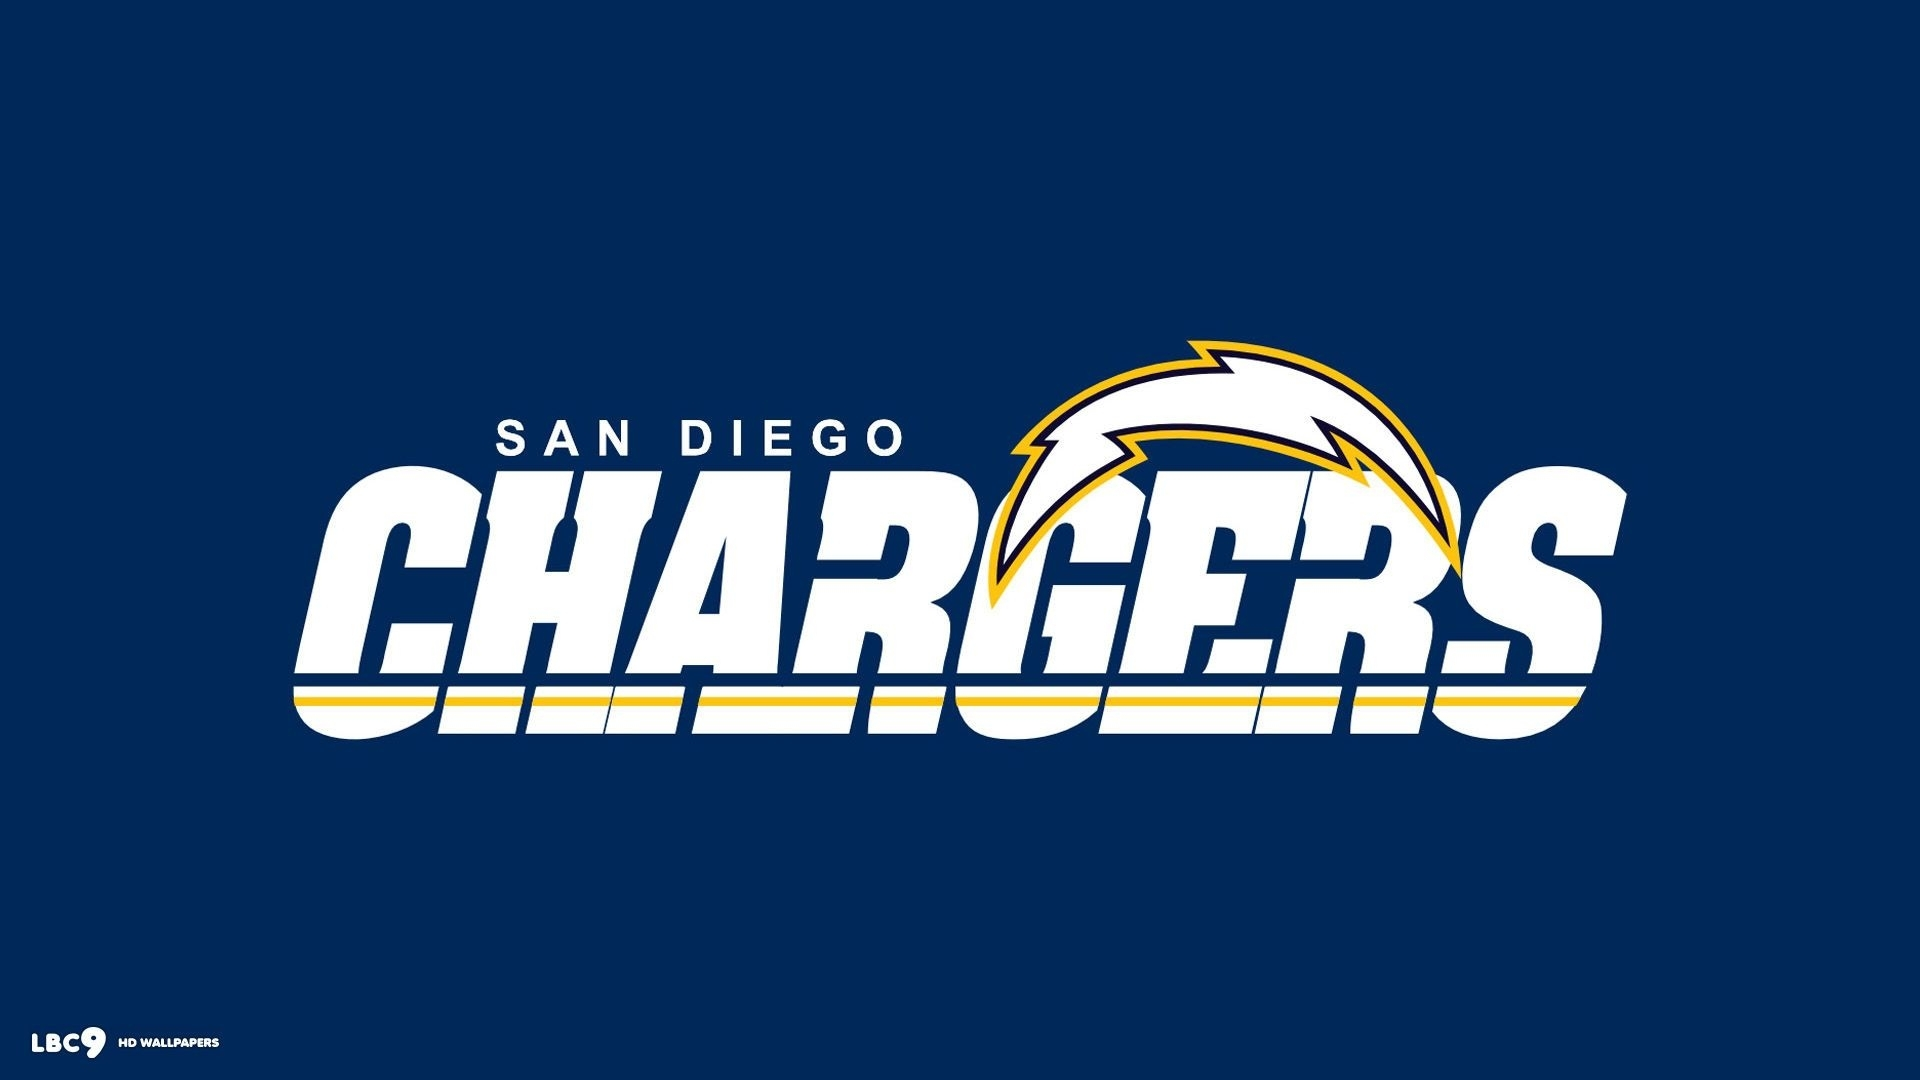 san diego chargers wallpapers hd download - page 2 of 3